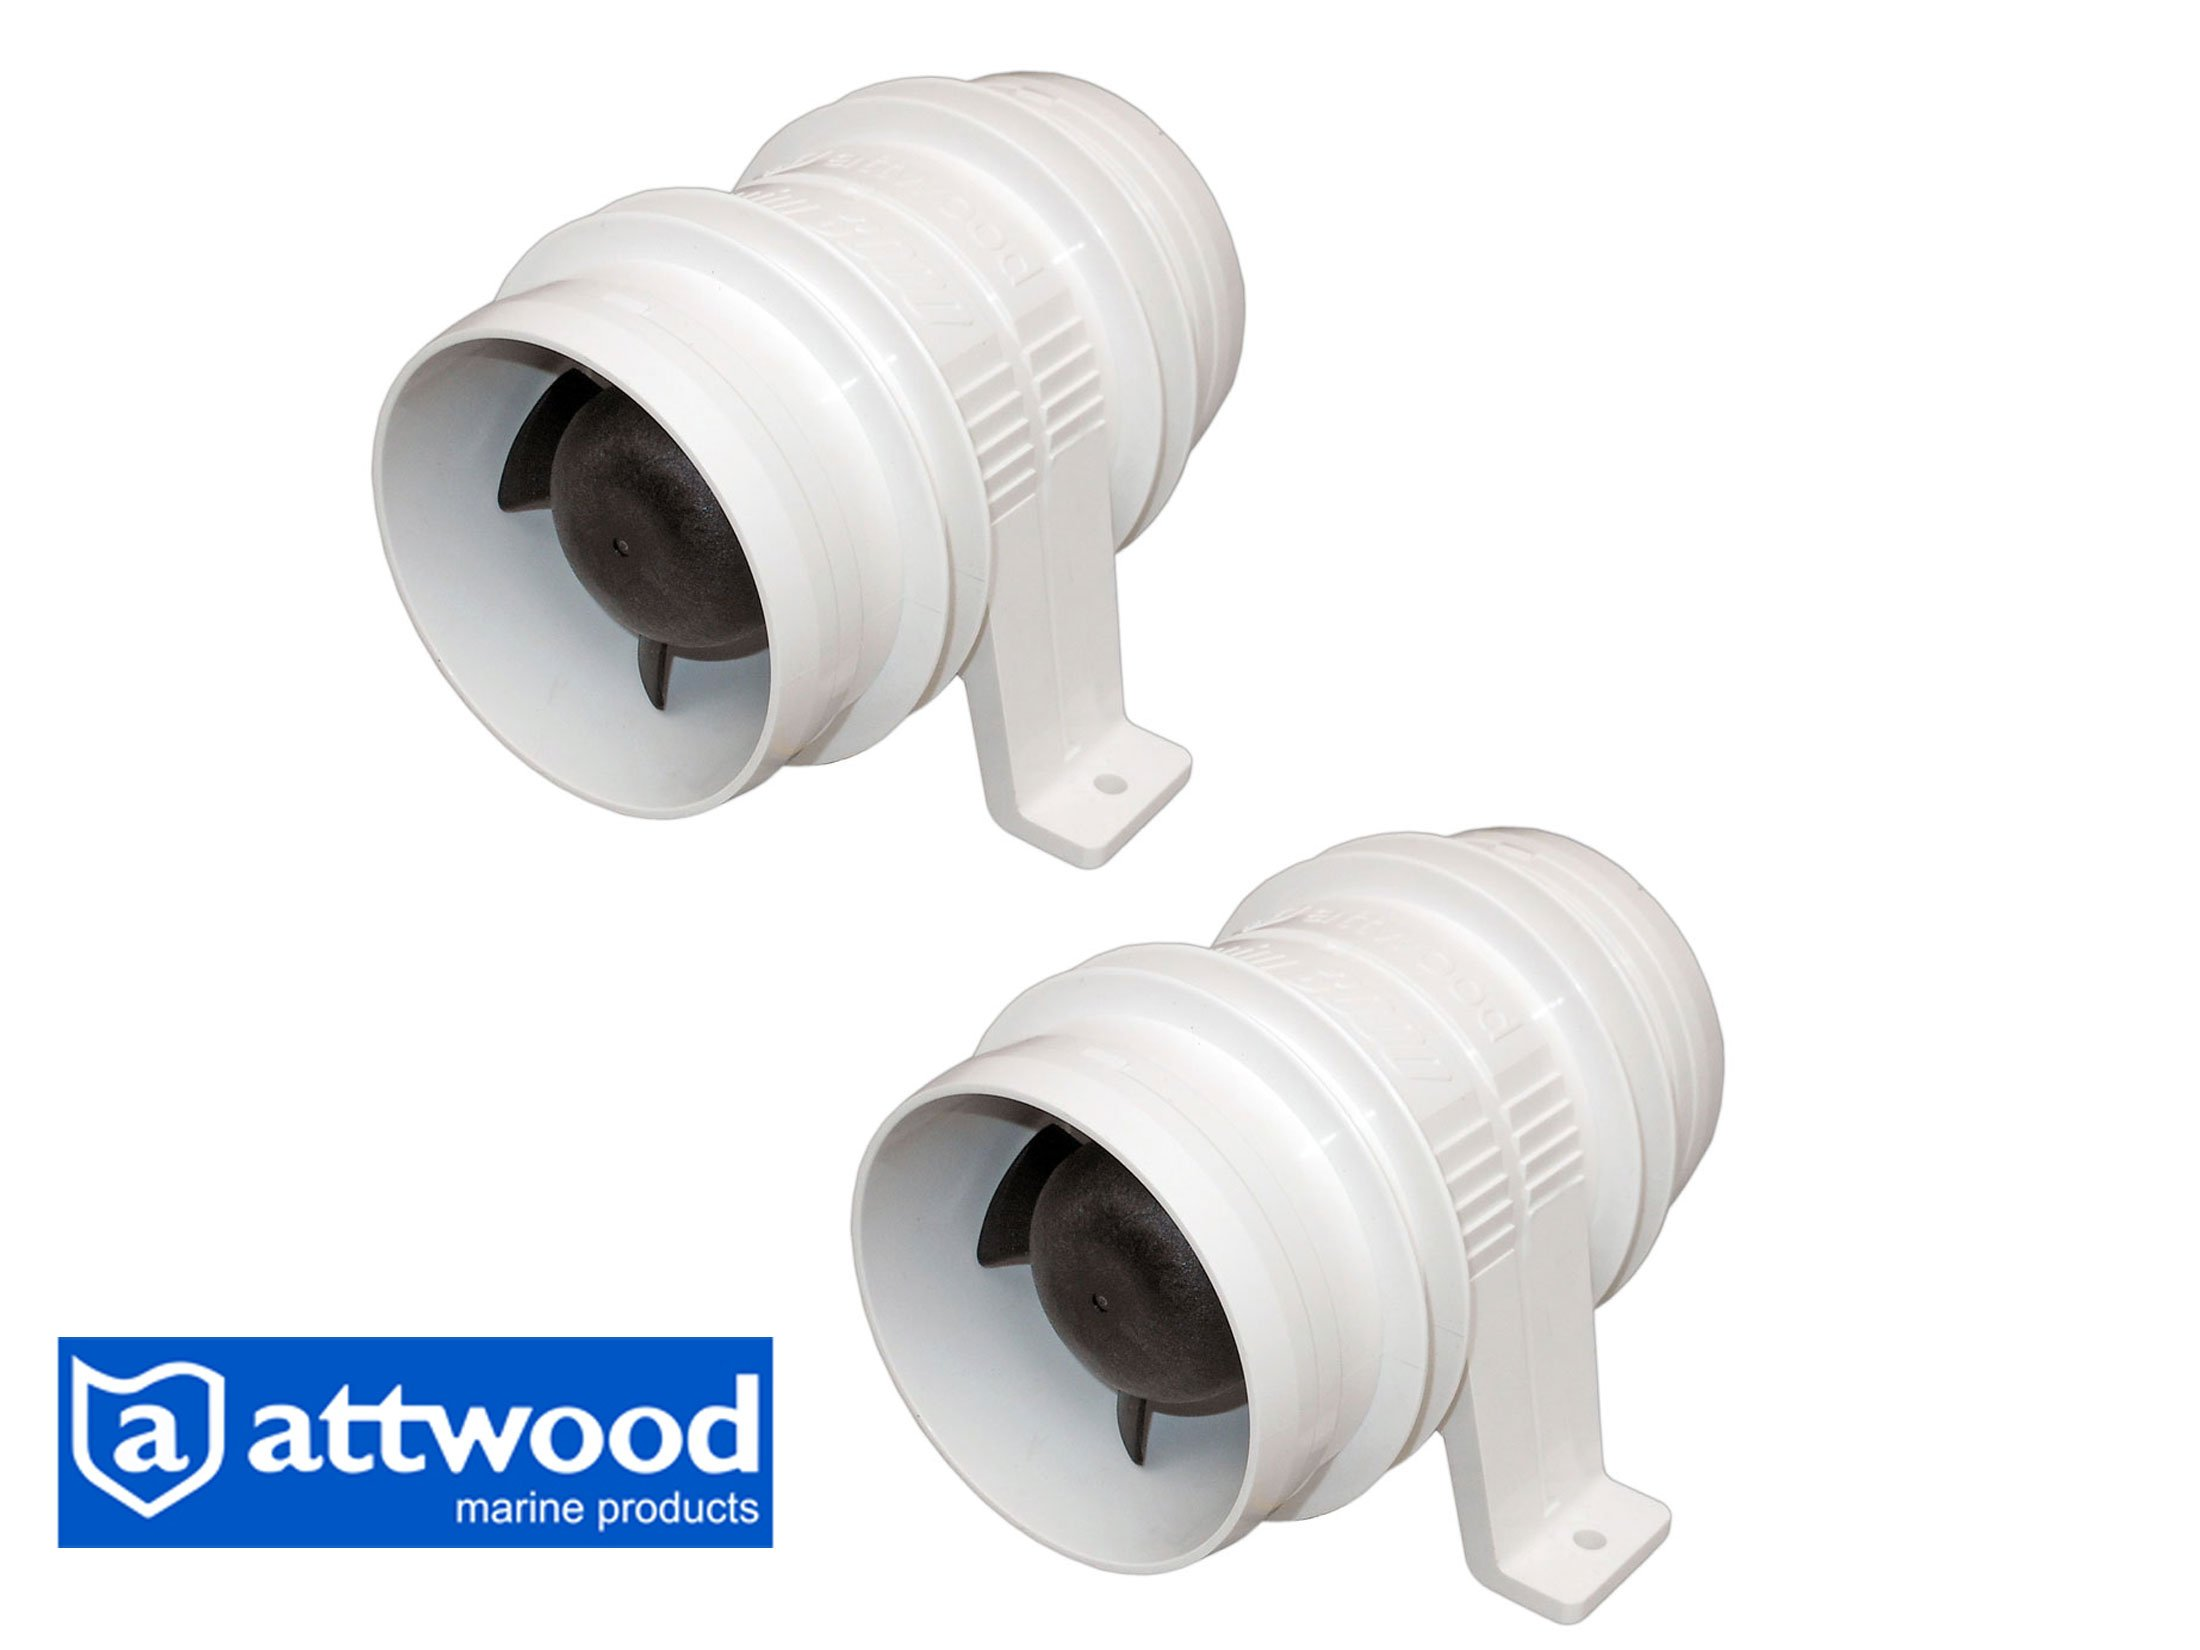 Set of 2 - Marine 3'' Electric In-line Blower for Boats & Rvs - 12v – Attwood Turbo 3000